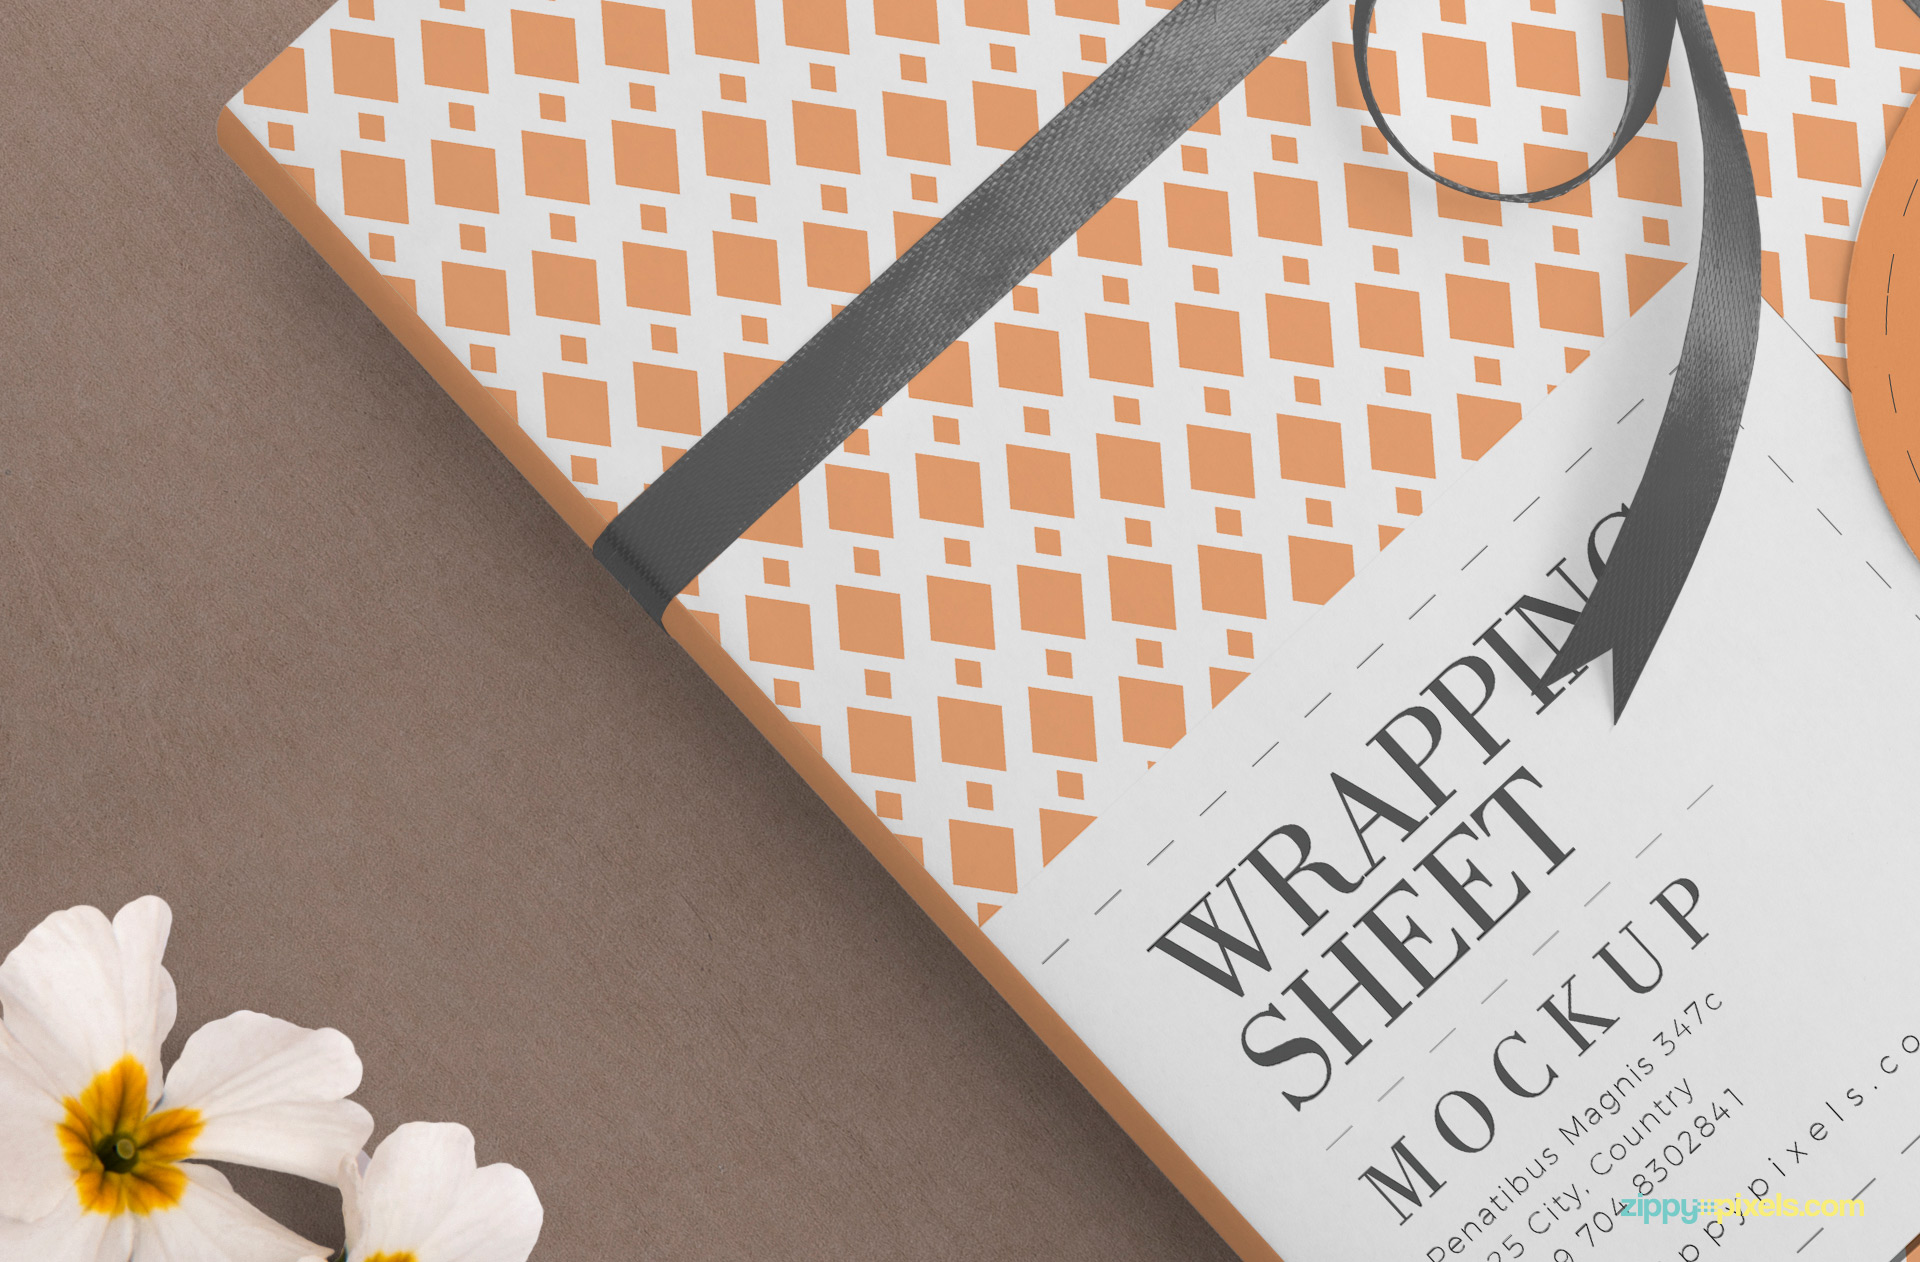 Beautiful paper textured background also included in the PSD.